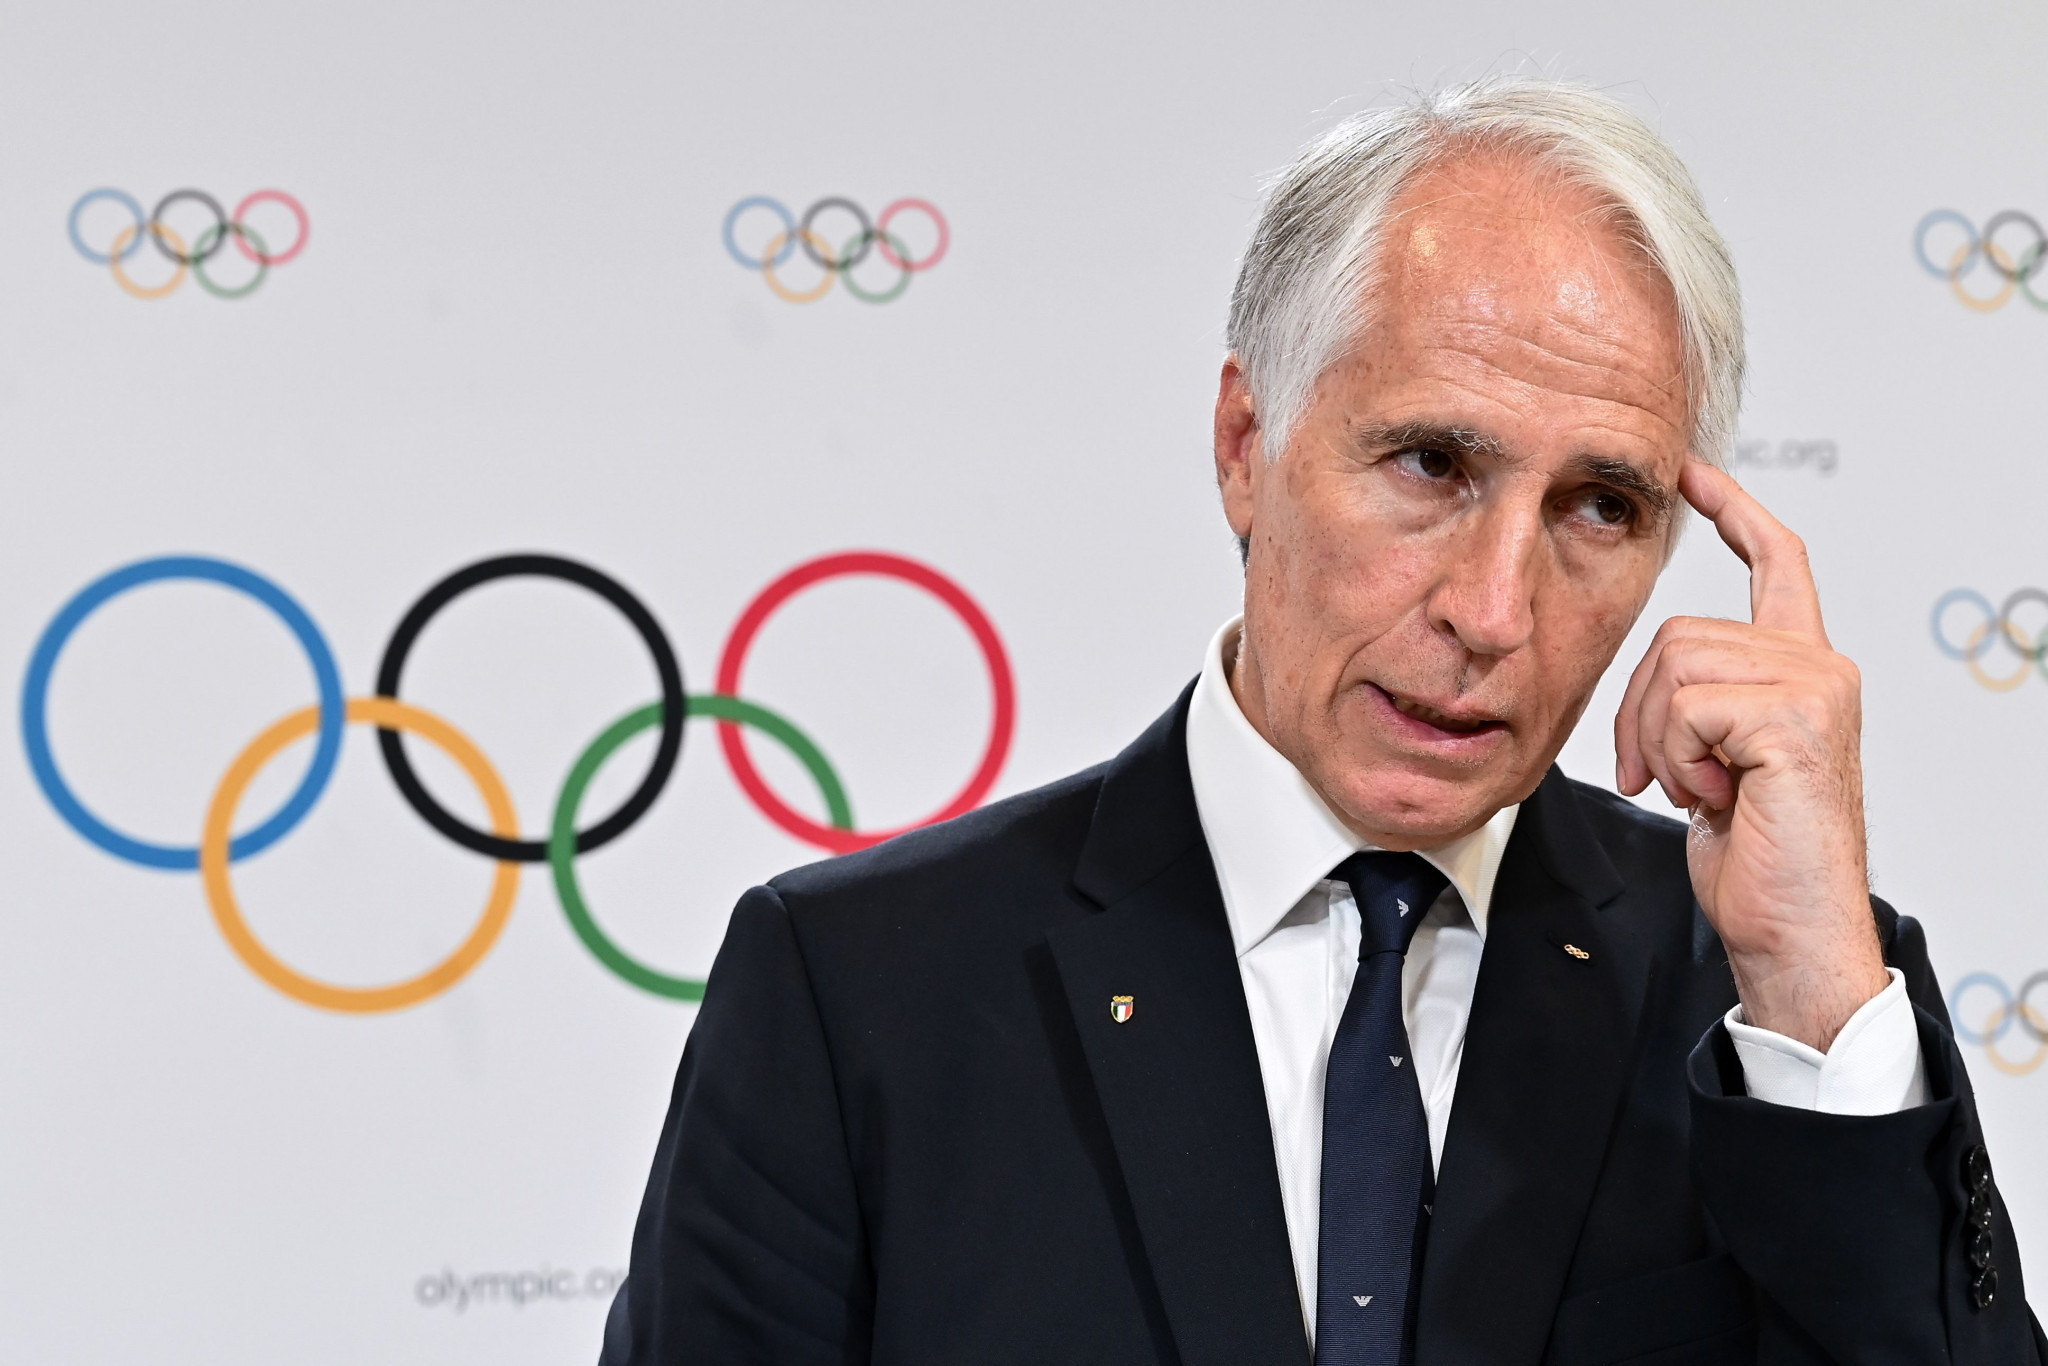 Malagò says consensus needed if Milan Cortina 2026 speed skating venue to be moved